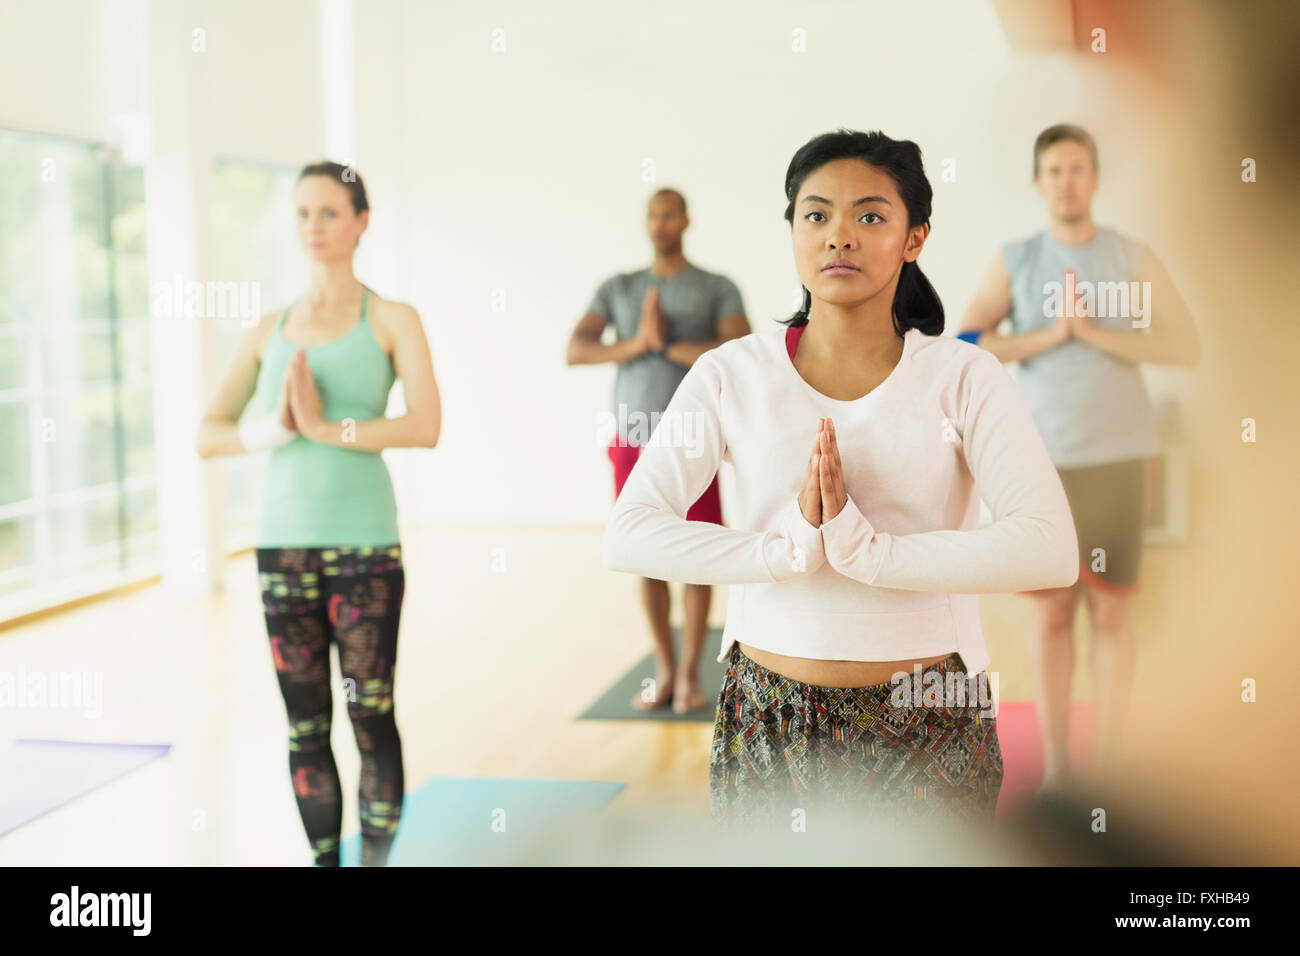 Focused woman with hands at prayer position in yoga class - Stock Image